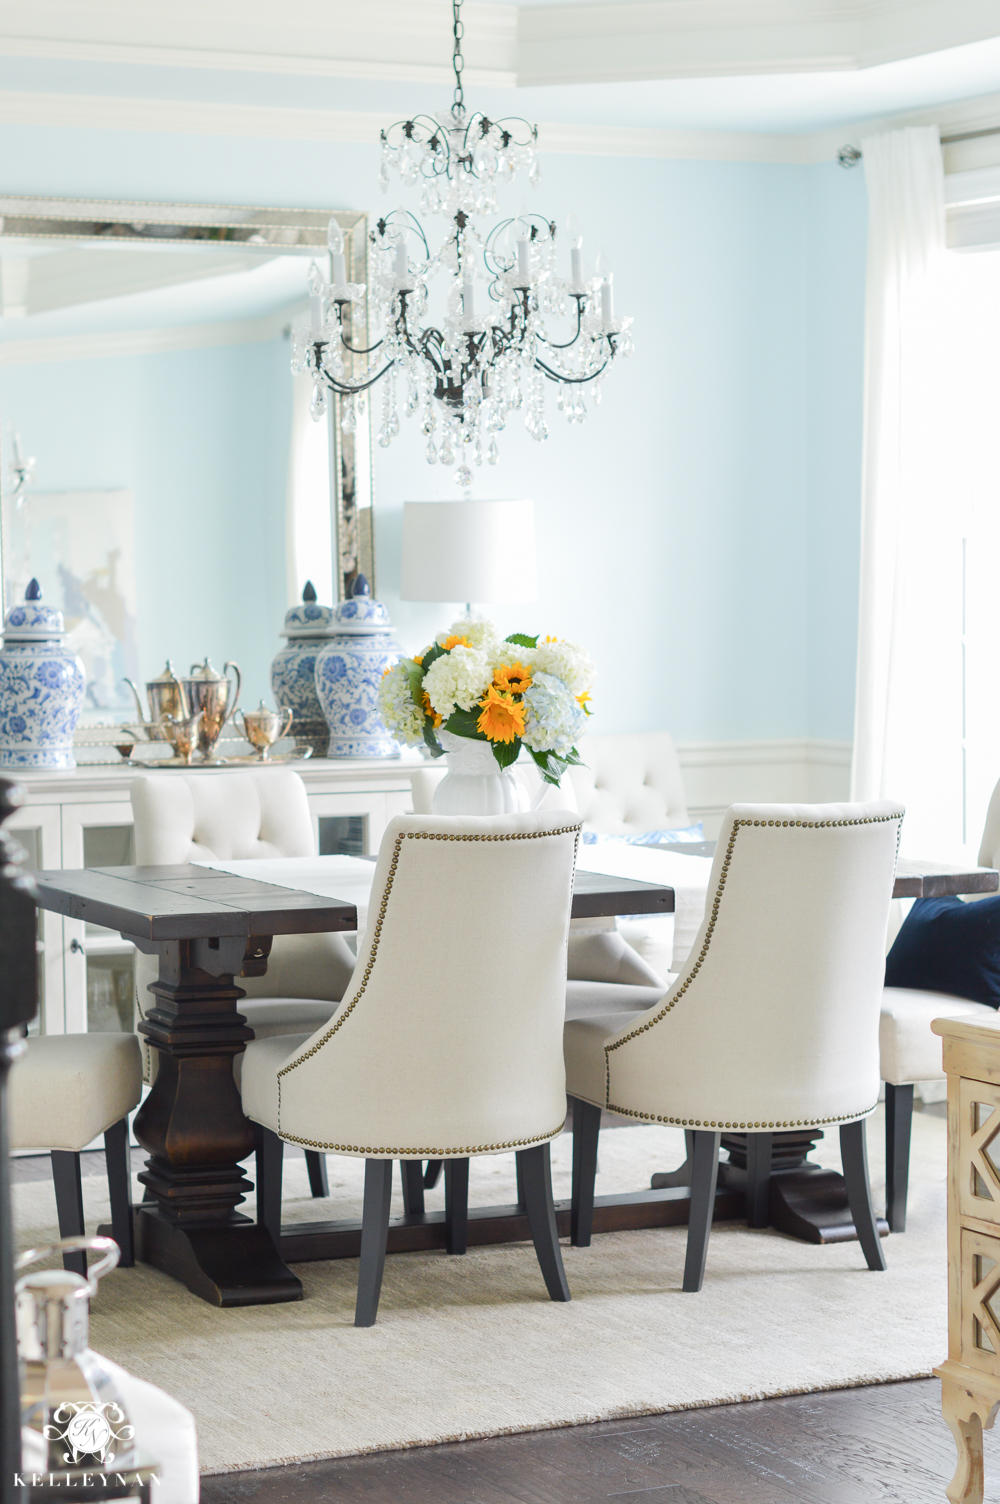 Shades of Summer Home Tour with Neutrals and Naturals- blue dining room with elegant chandelier- lauren's surprise by sherwin williams